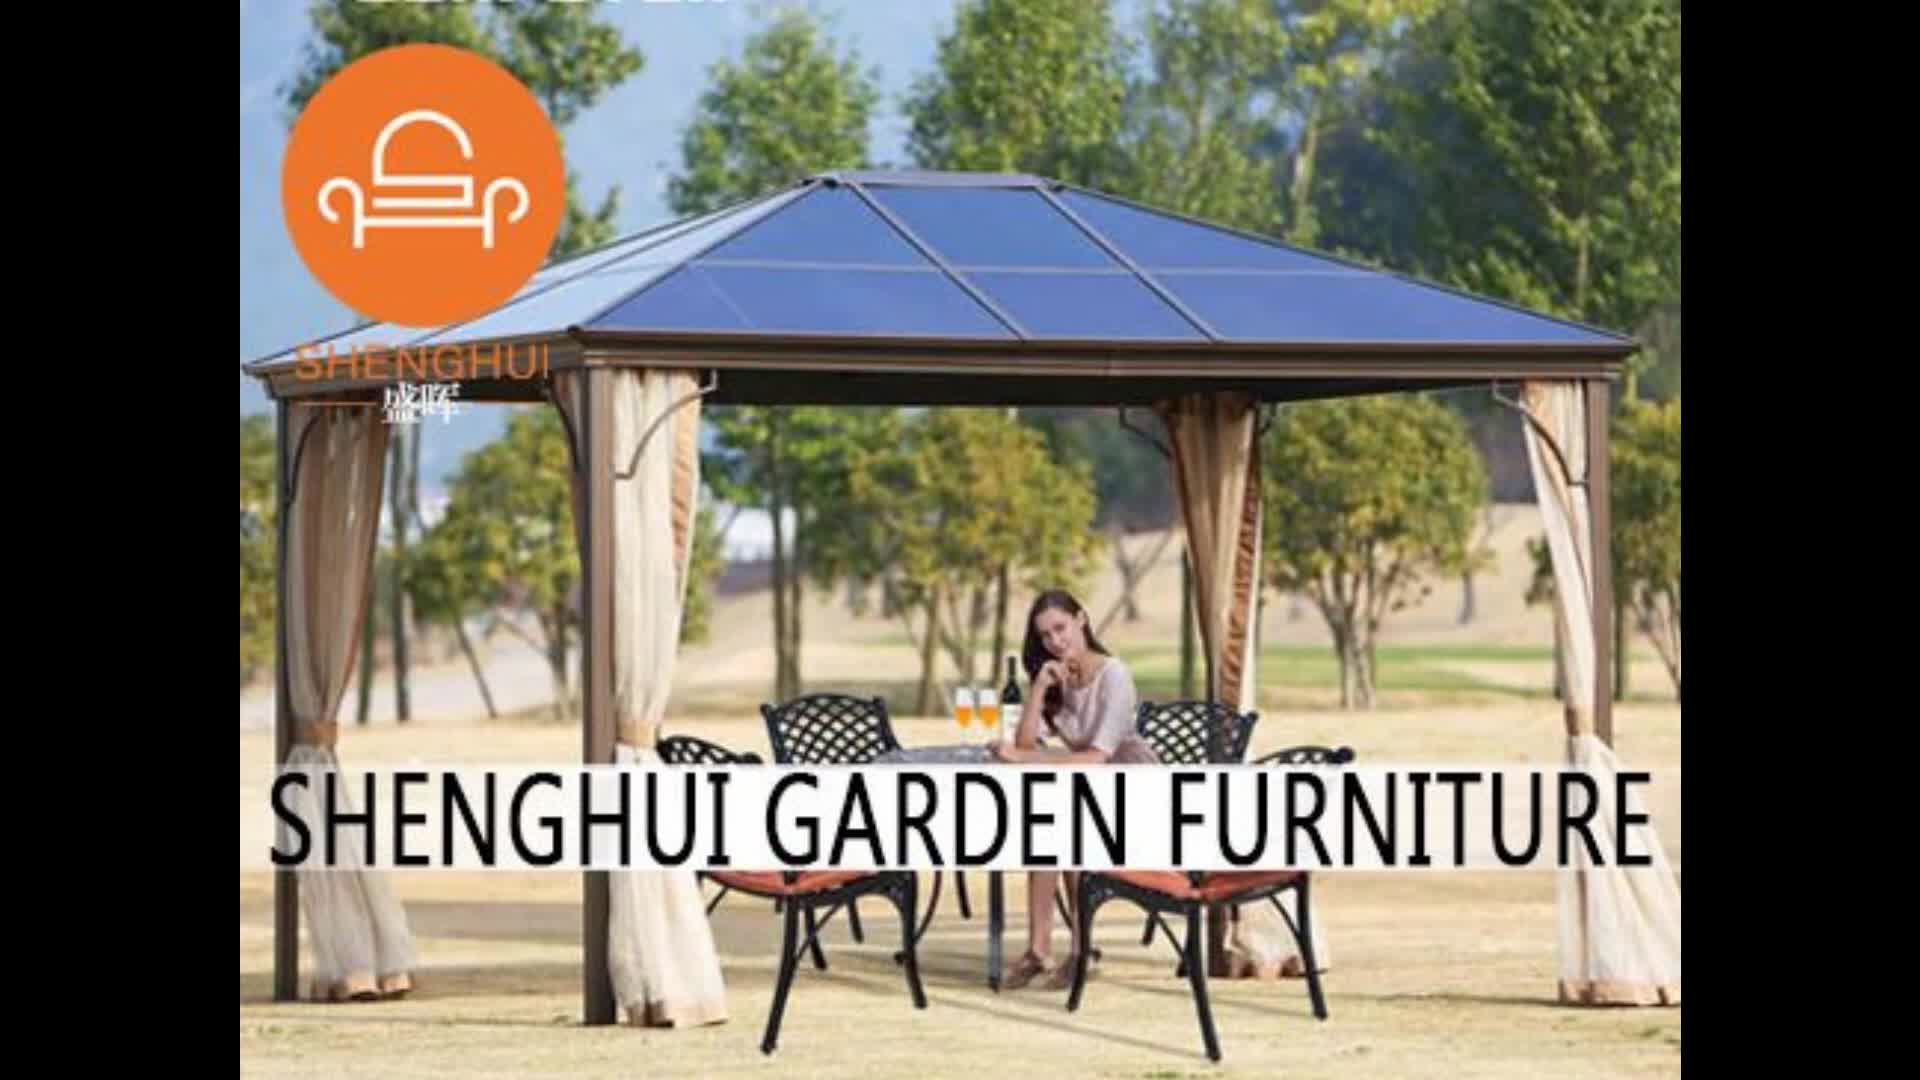 2018 hot selling 3*3M 3*4M garden metal aluminum frame rome gazebo pavilion tent outdoor with double roof